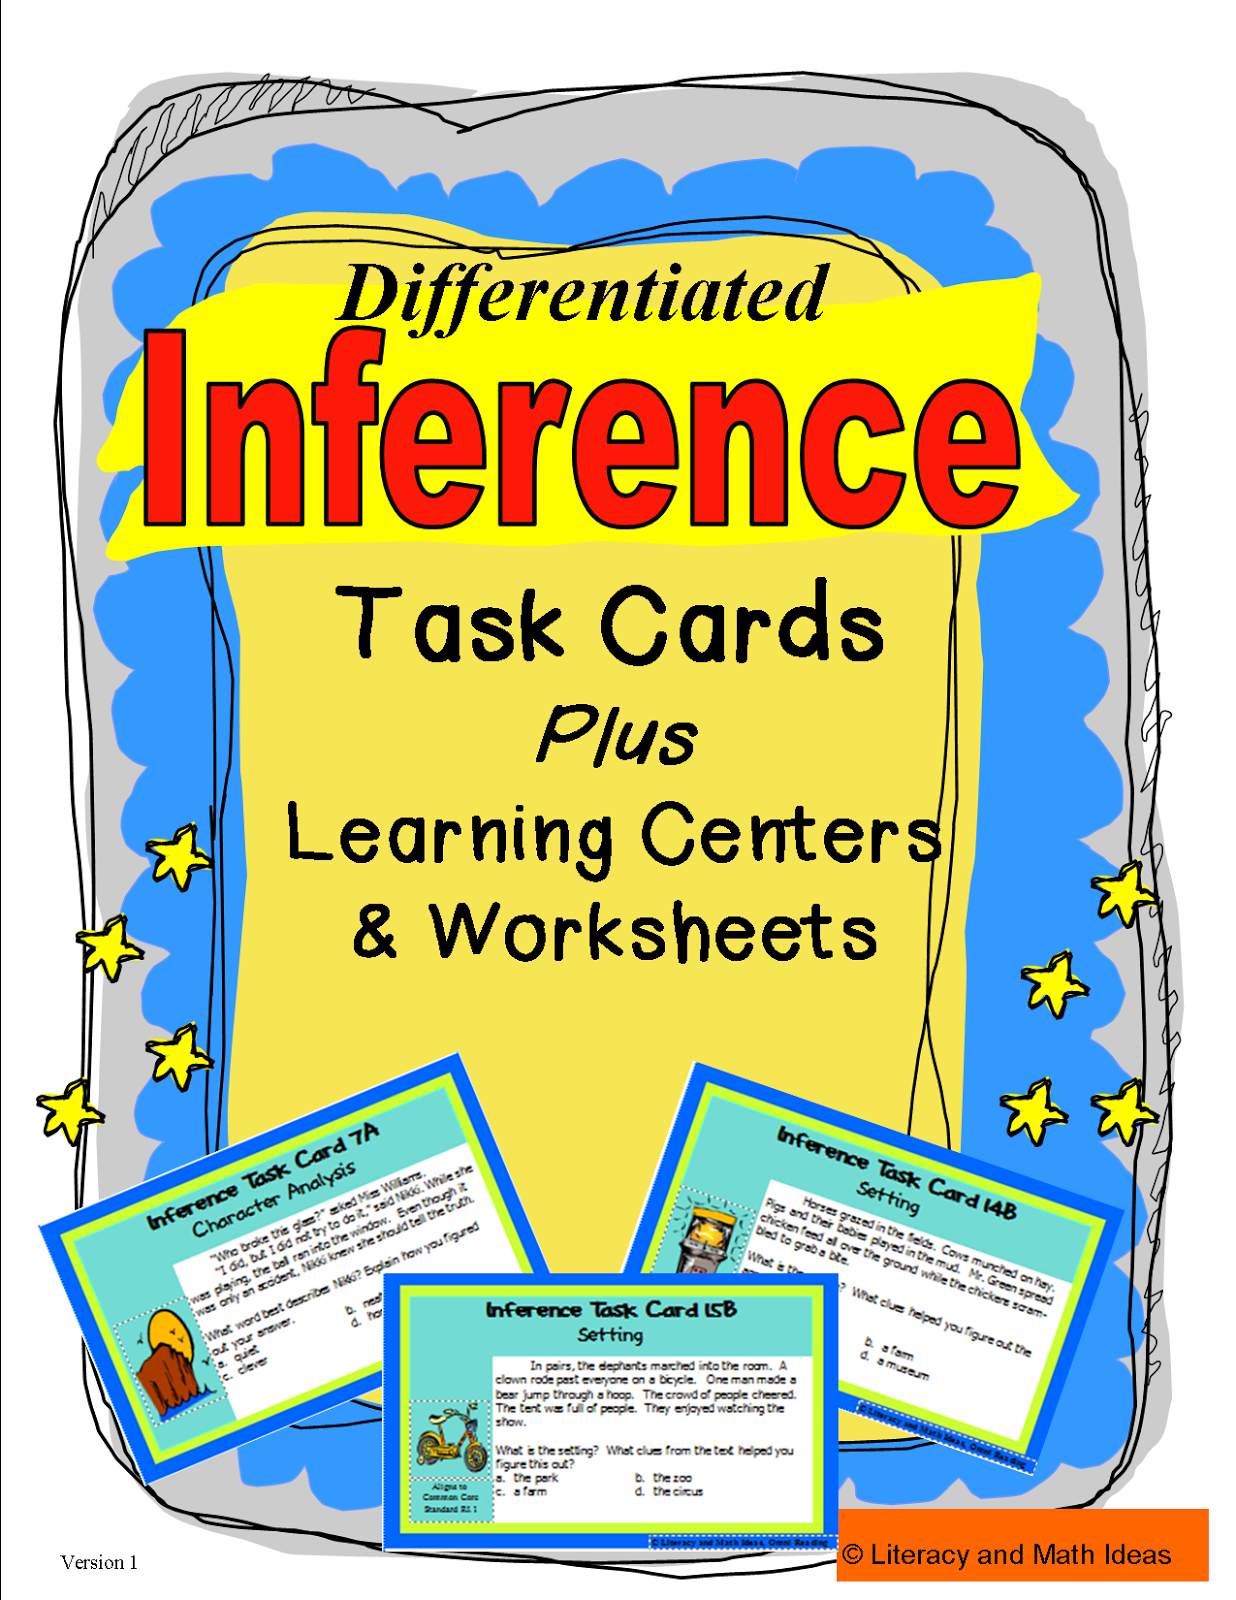 Differentiated Inference Task Cards The Task Cards Are Organized By The Types Of Inferences